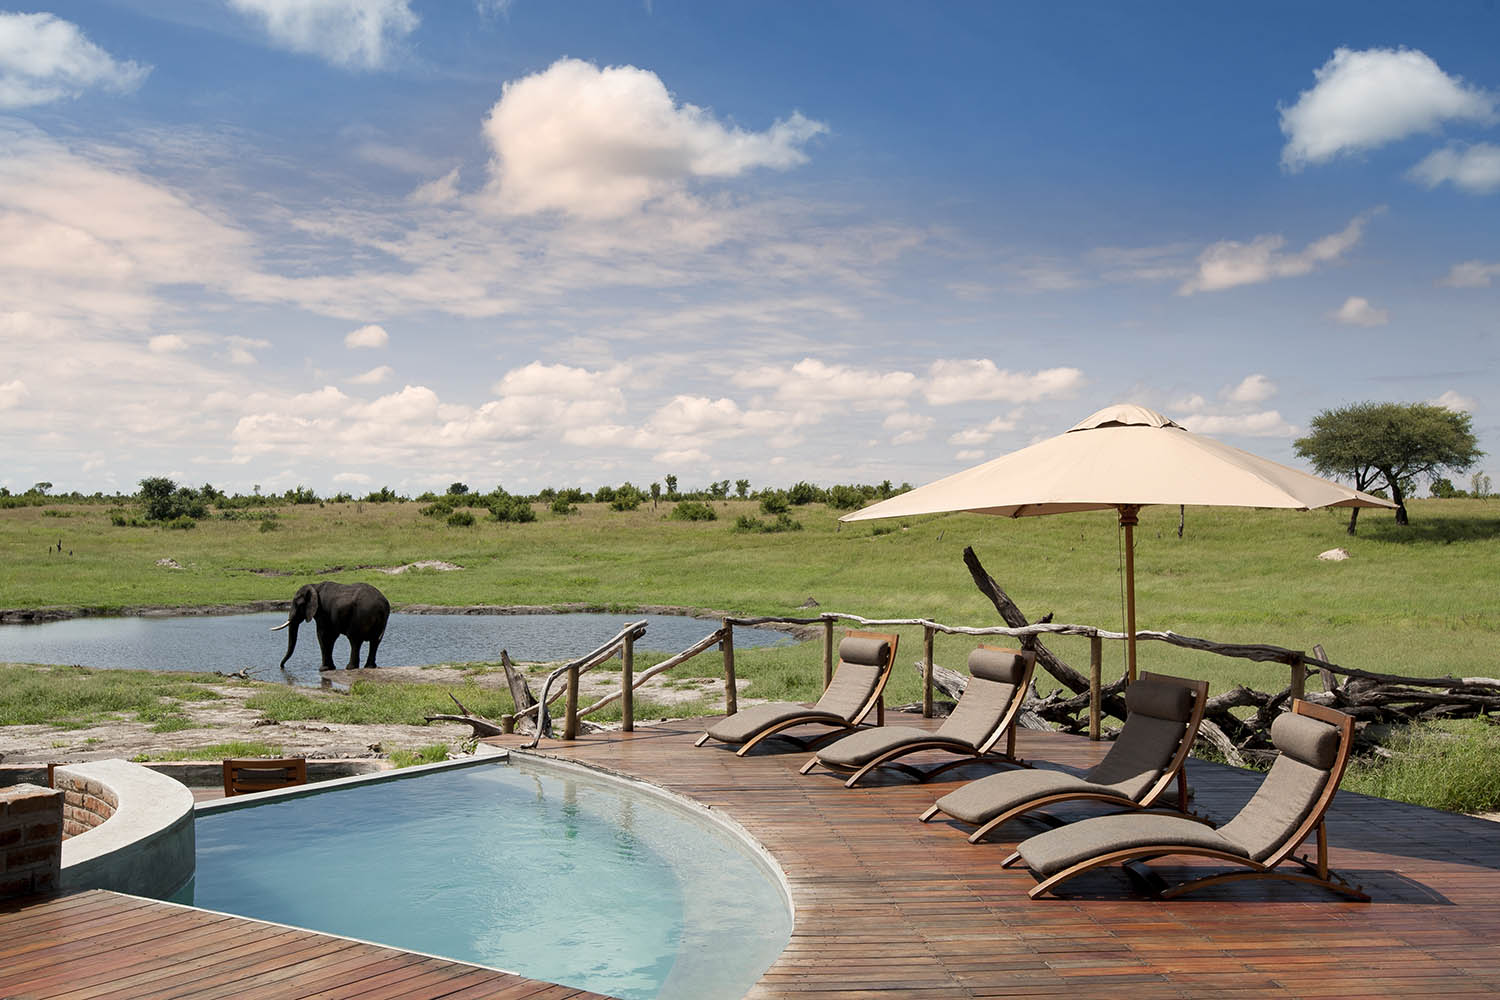 somalisa camp zimbabwe-lodges-zambia-in-style-safaris-wildlife-africa-hwange-national-park-pool-area-elephants